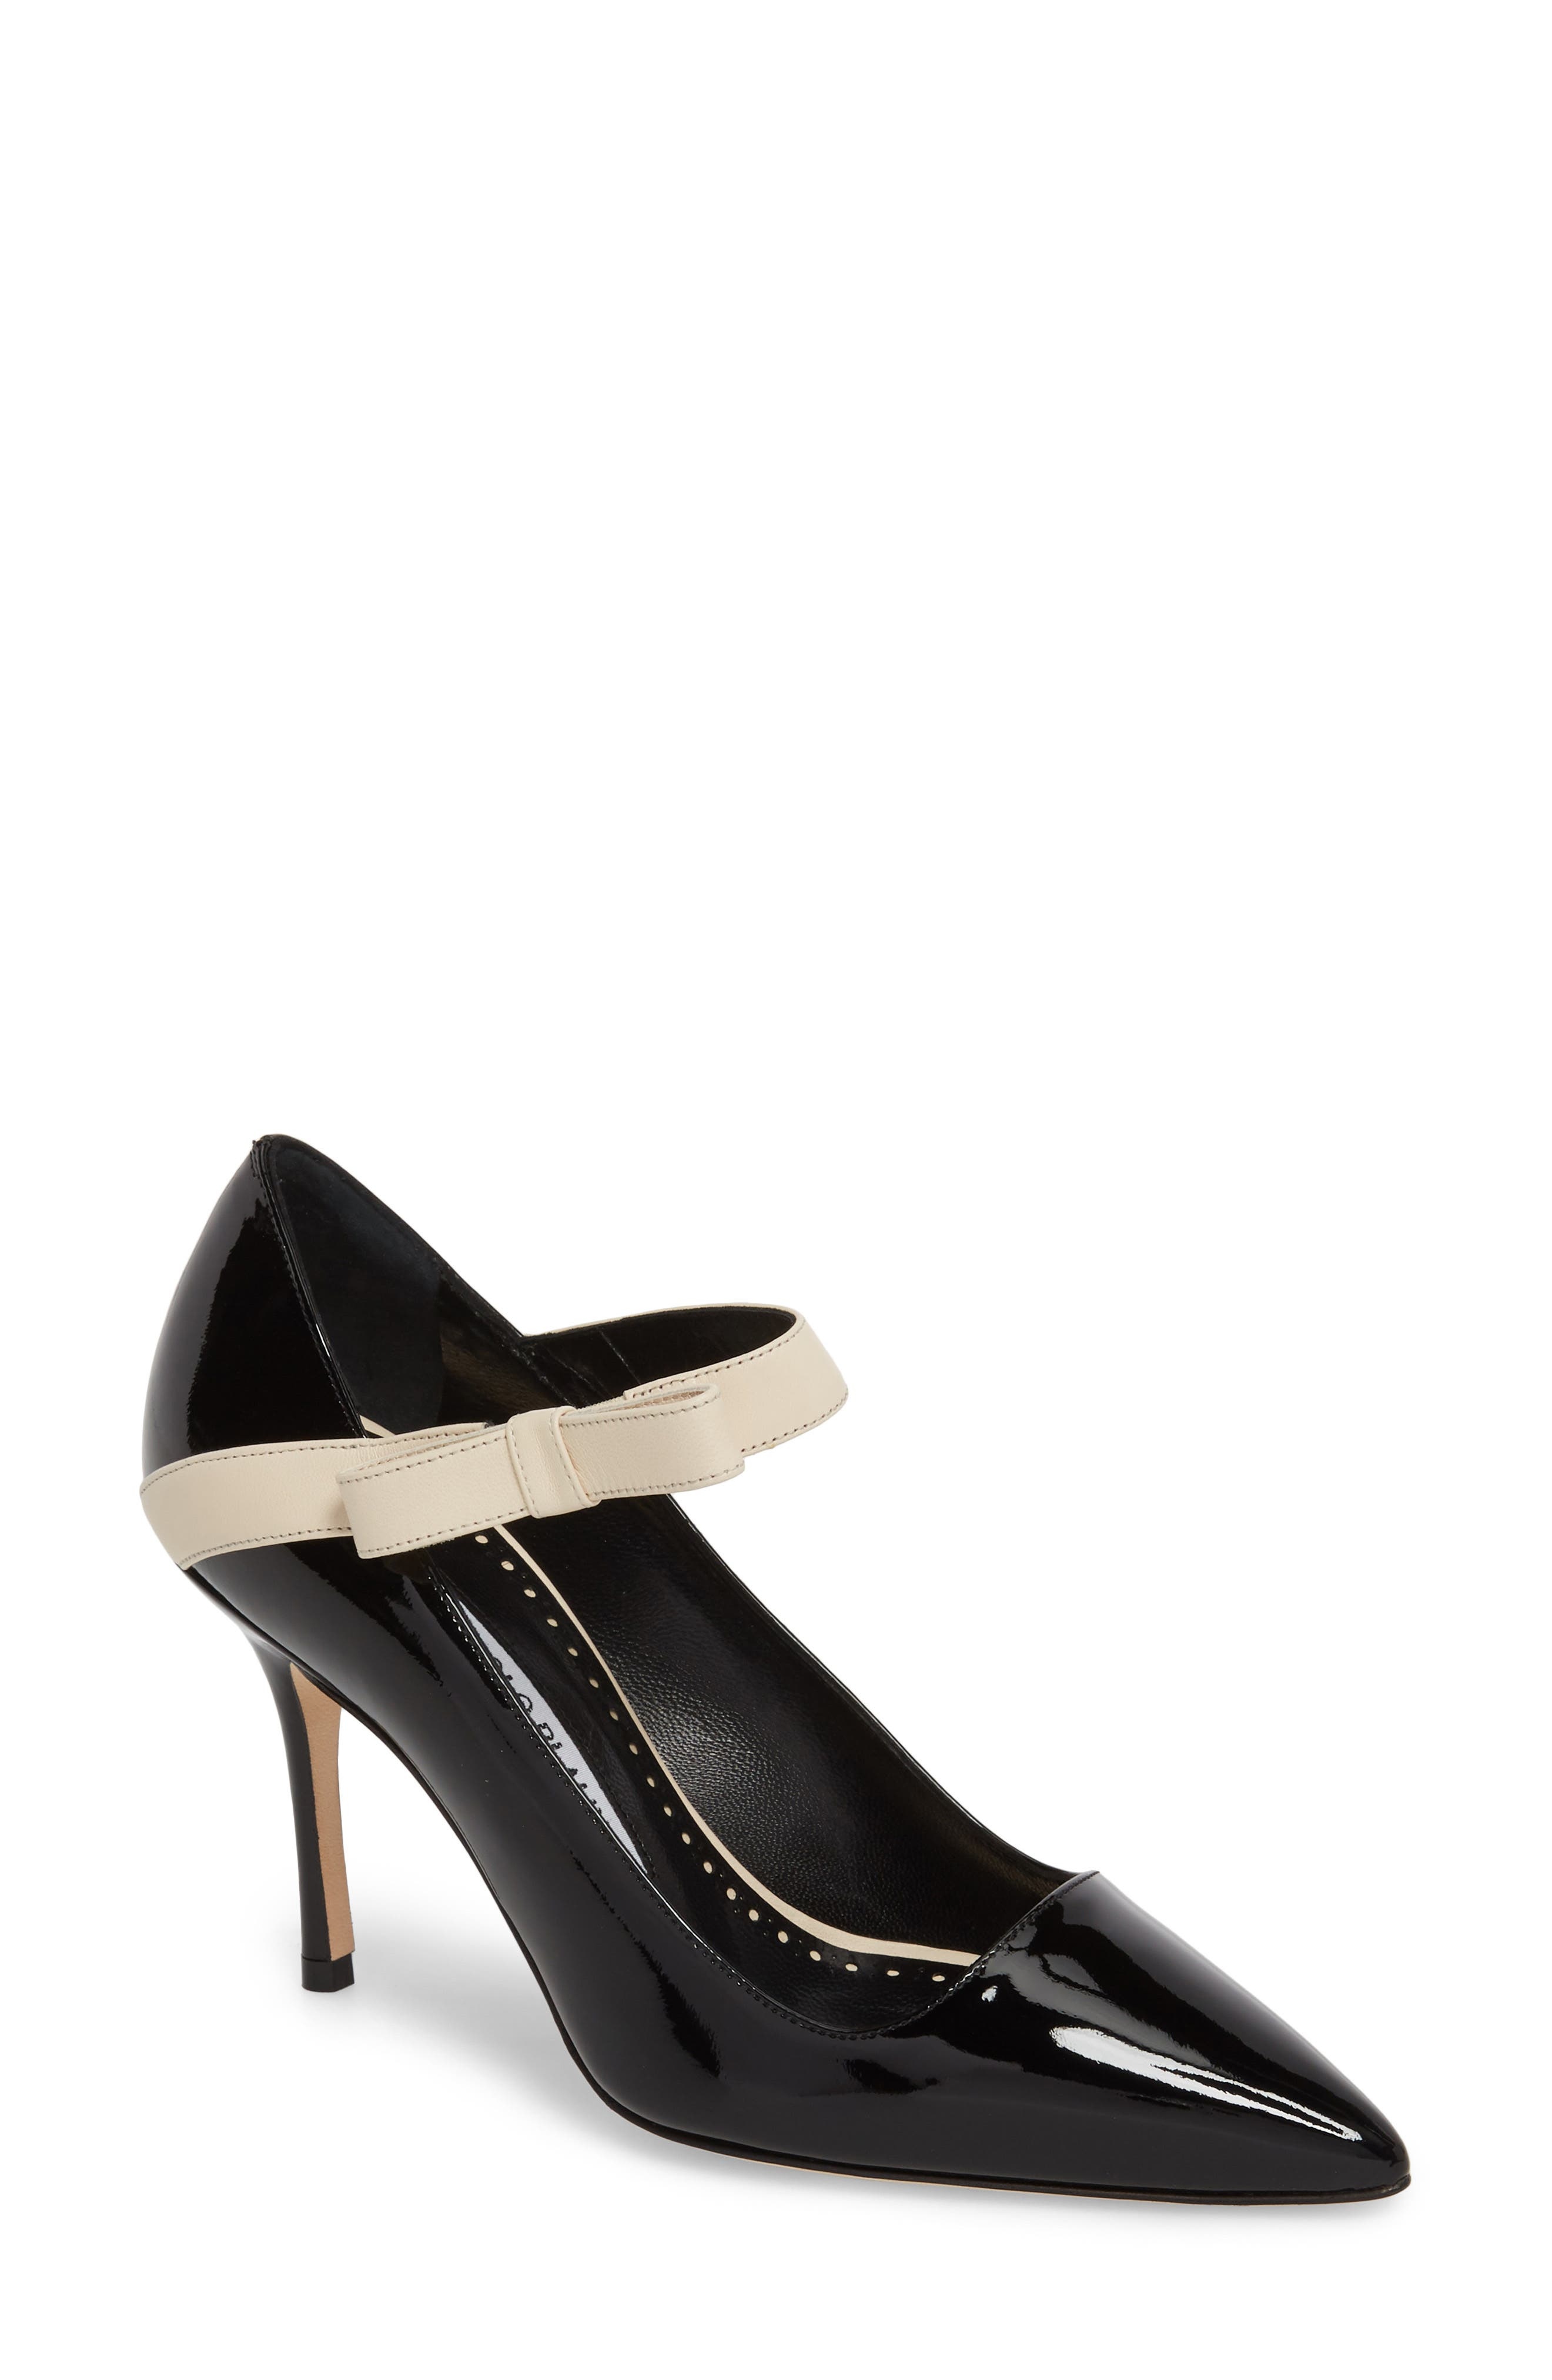 Immaculada Bow Pointy Toe Pump,                             Main thumbnail 1, color,                             Black/ White